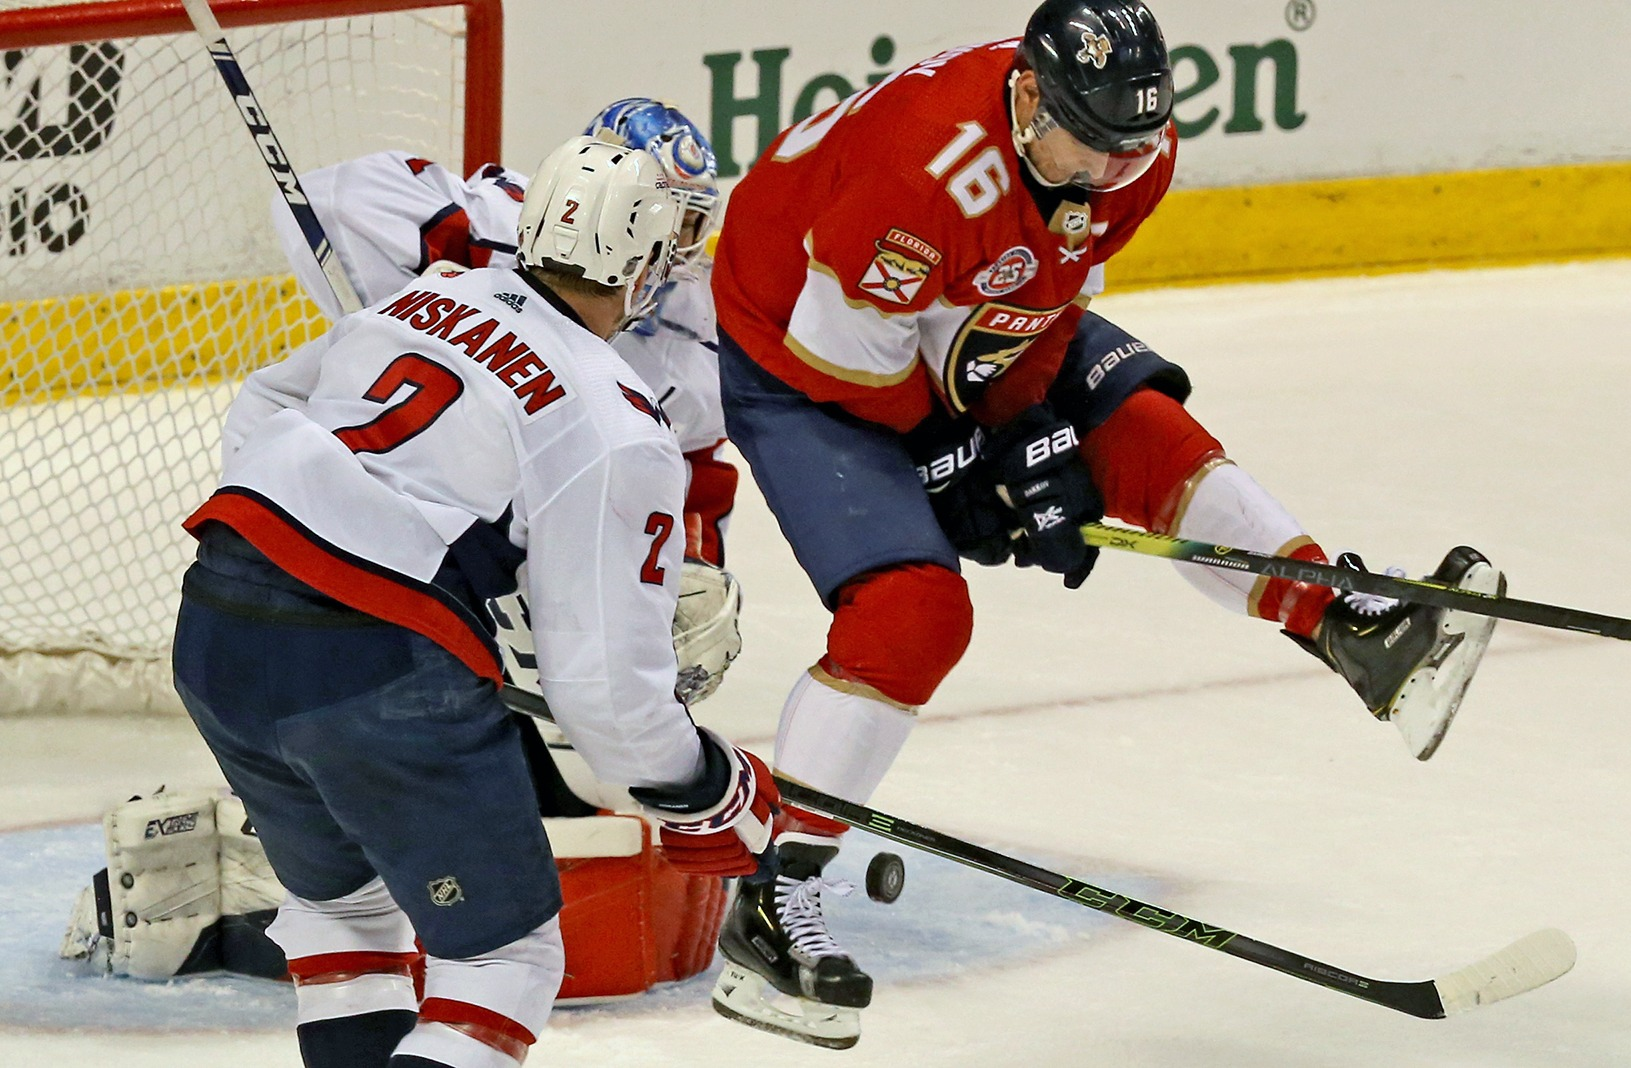 Capitals vs Panthers